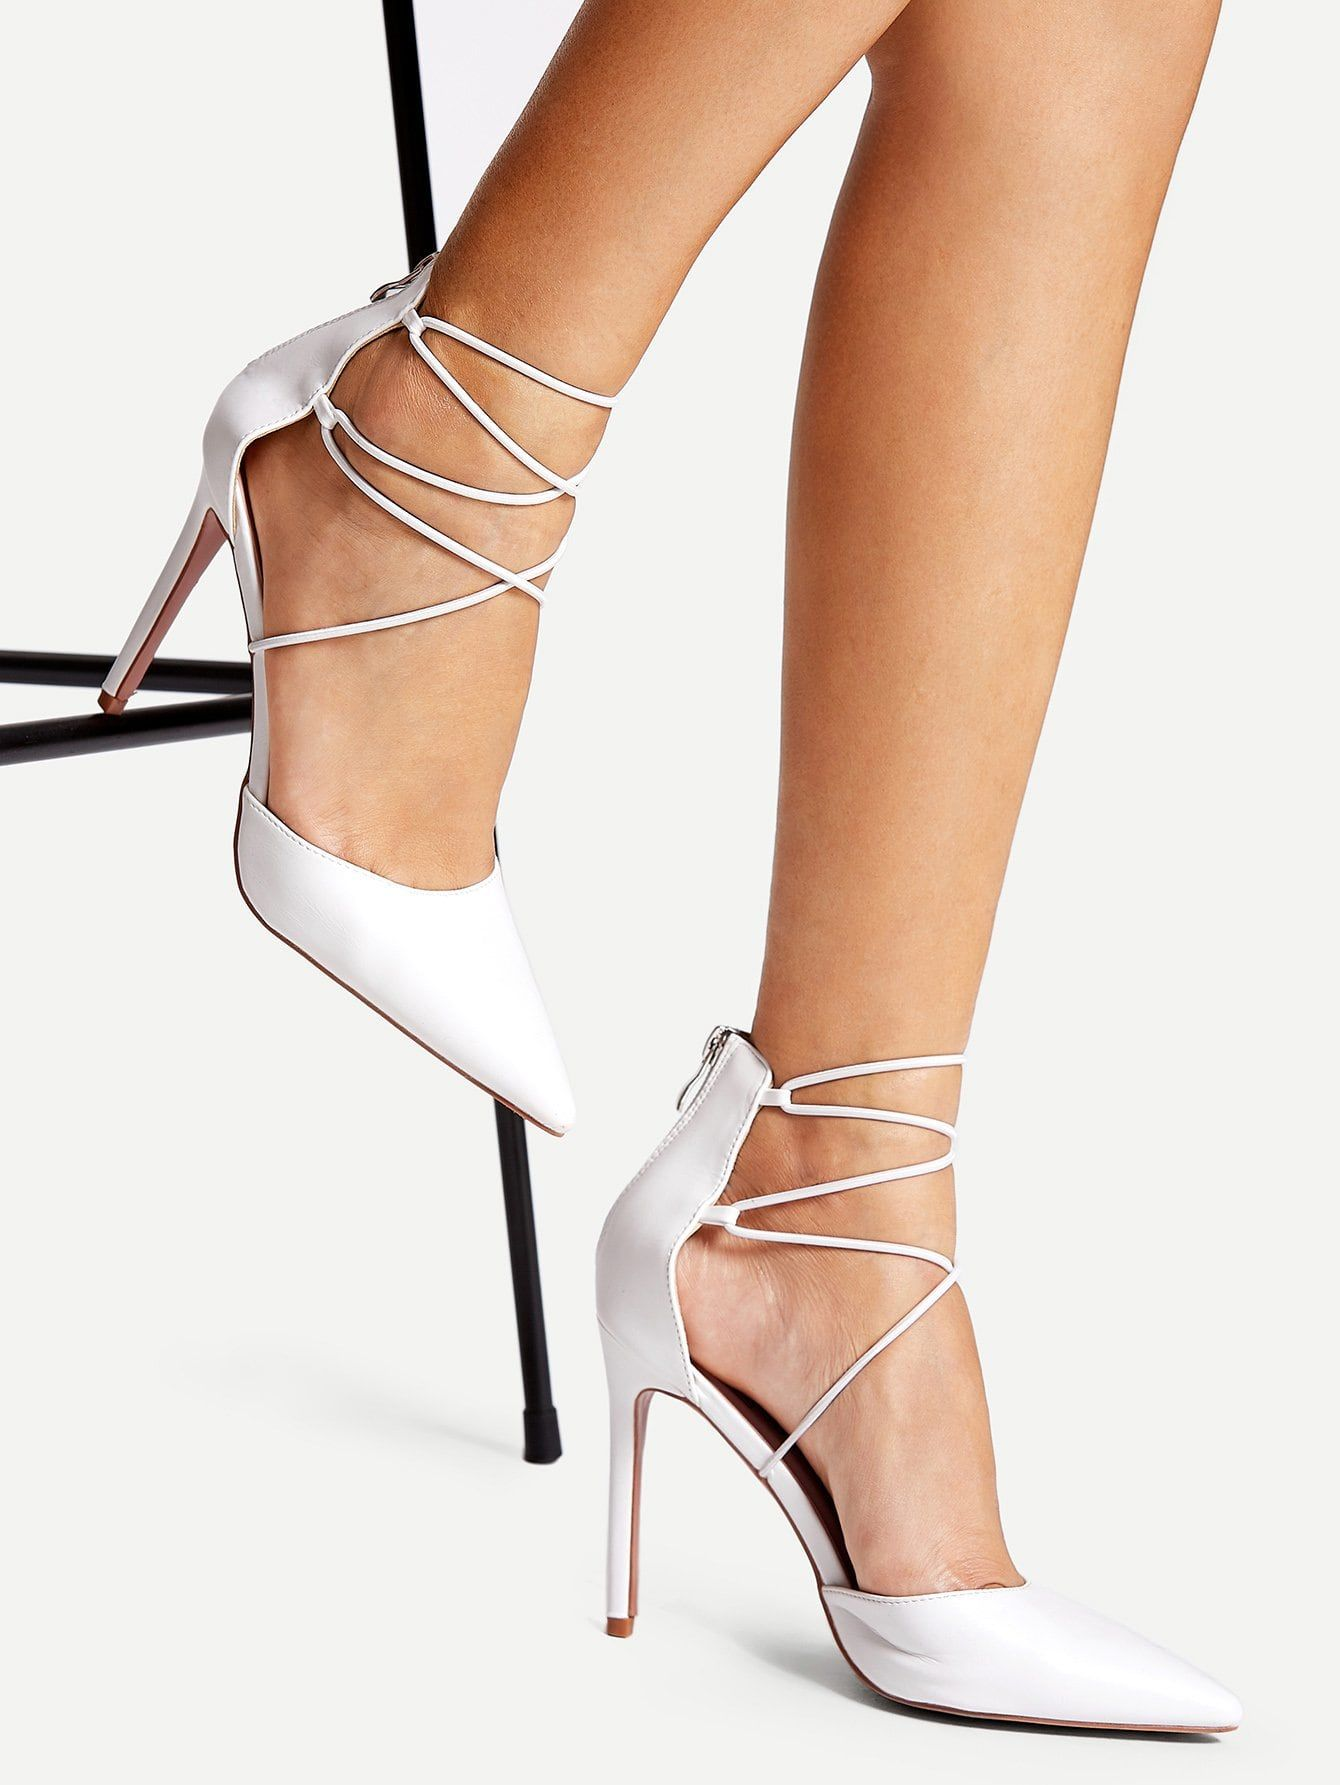 eb556daf5a39 Party White High Heel Stiletto Criss Cross Strap Point Toe Heels ...